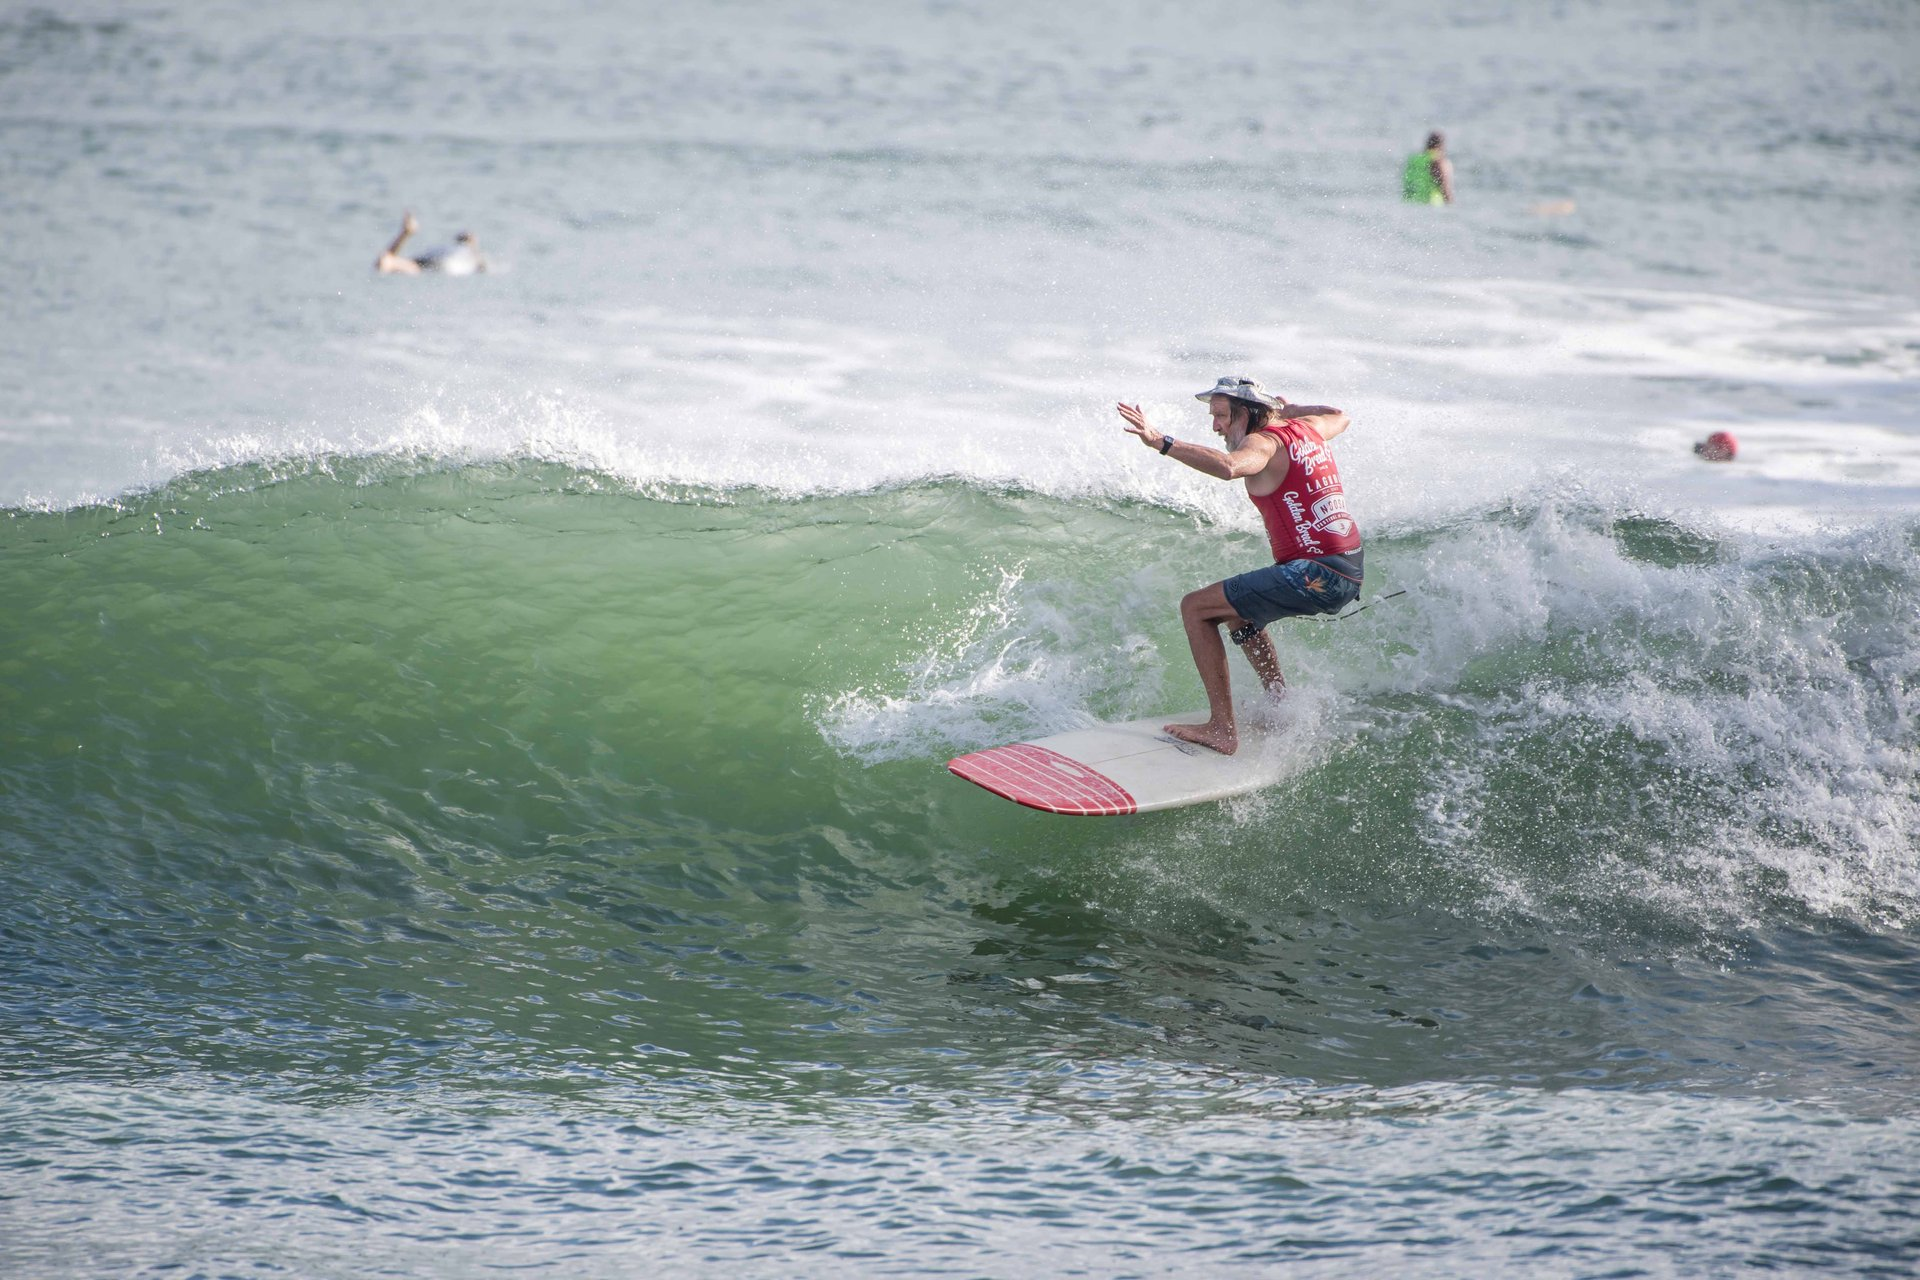 Noosa Festival of Surfing in Australia - Best Season 2020